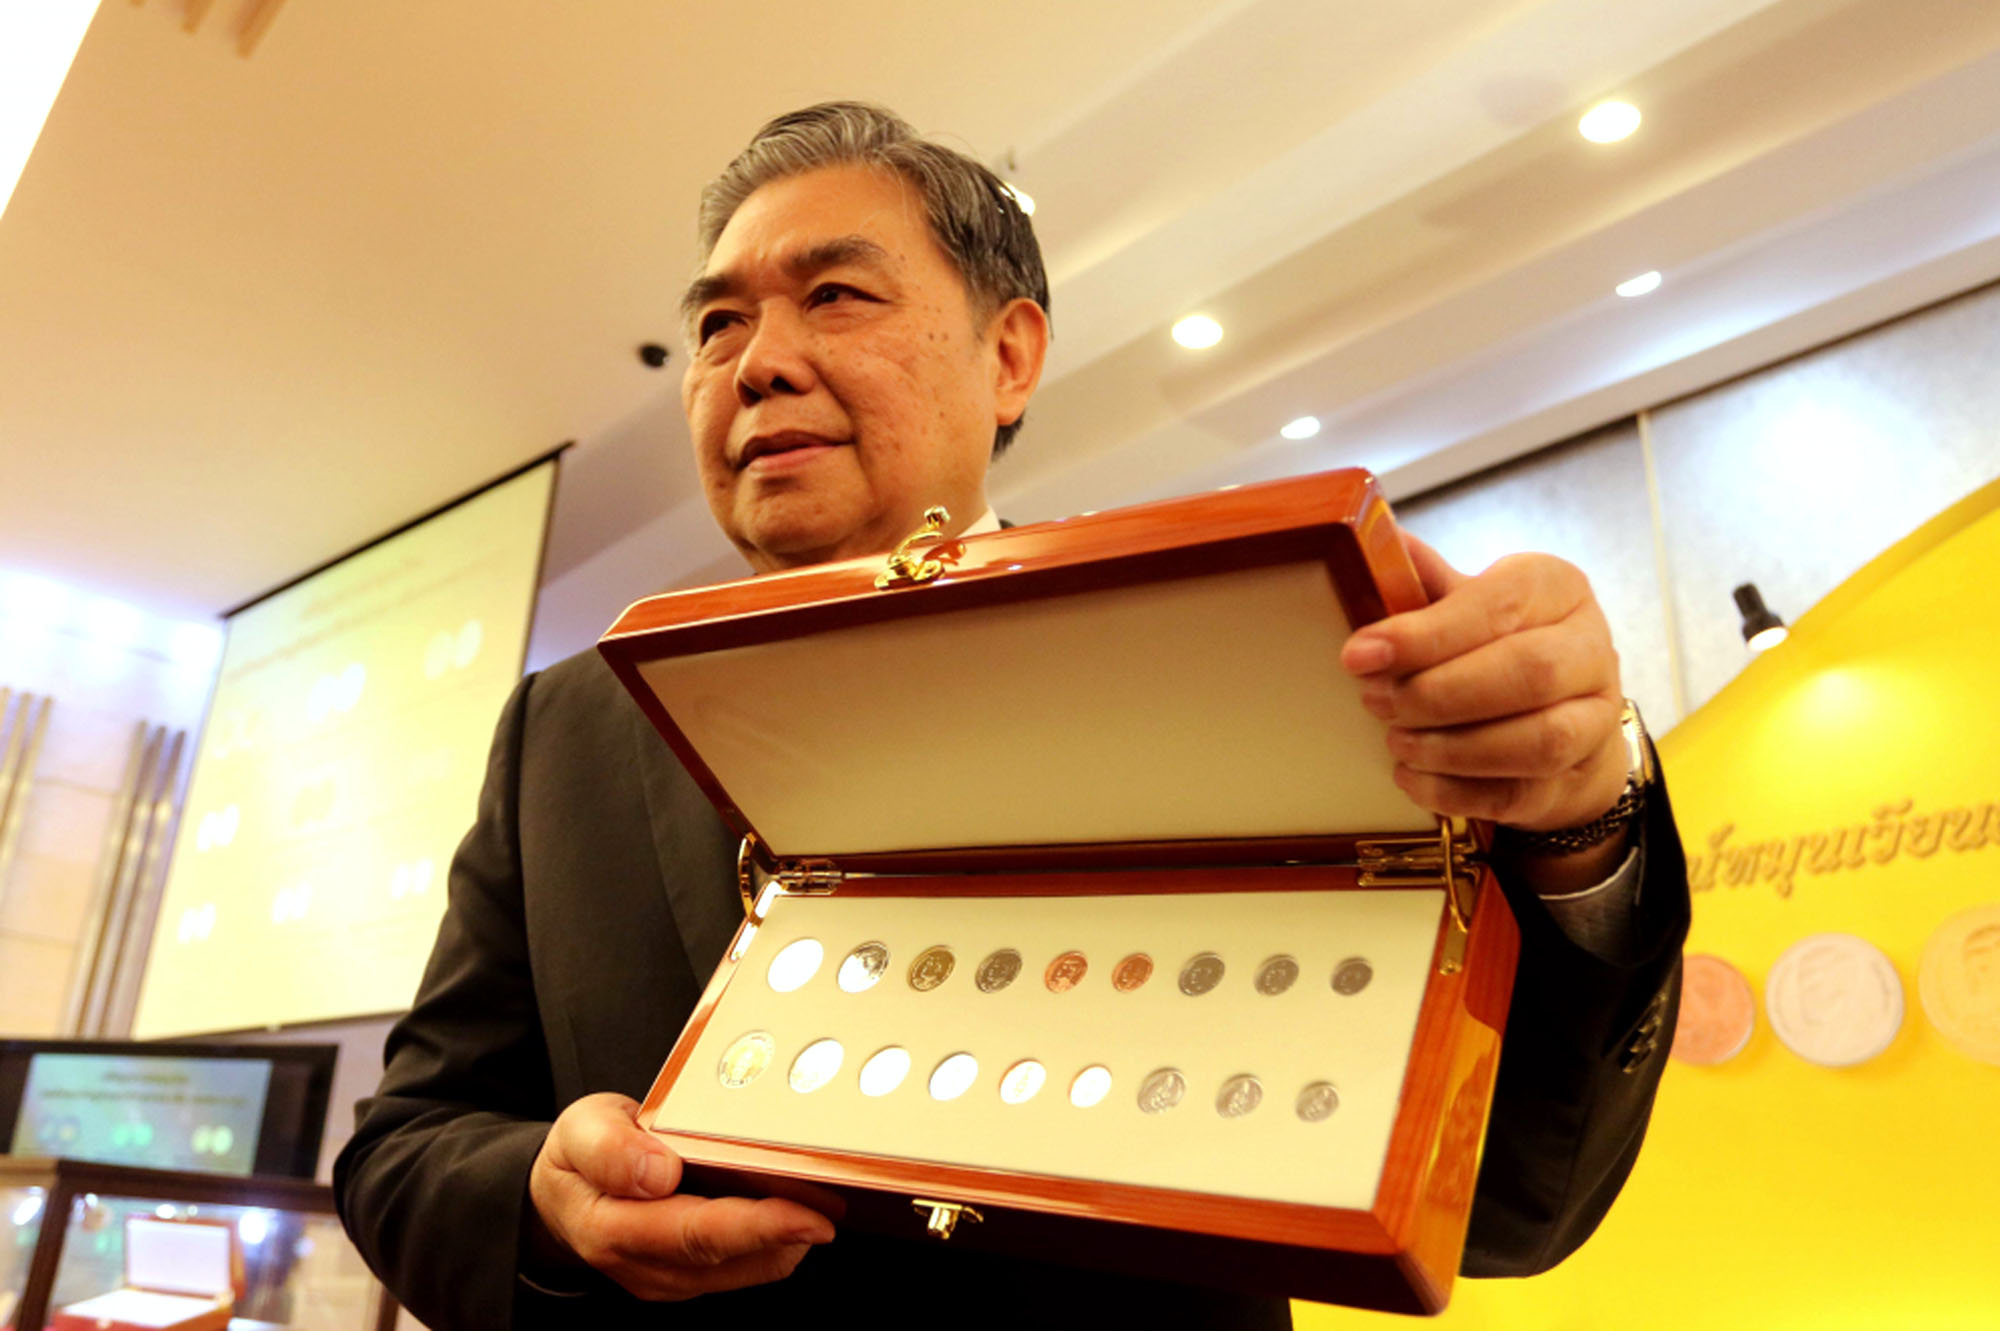 Official of the Thai Royal Mint holding a presentation case containing the complete range of King Rama X coins released in April 2018 including (left to right) the circulating 10-, 5- 2-, 1-baht, 50- and 25-satang coins as well as 10-, 5- and 1-satang coins which are used to balance accounts at financial institutions and don't circulate to the general public.